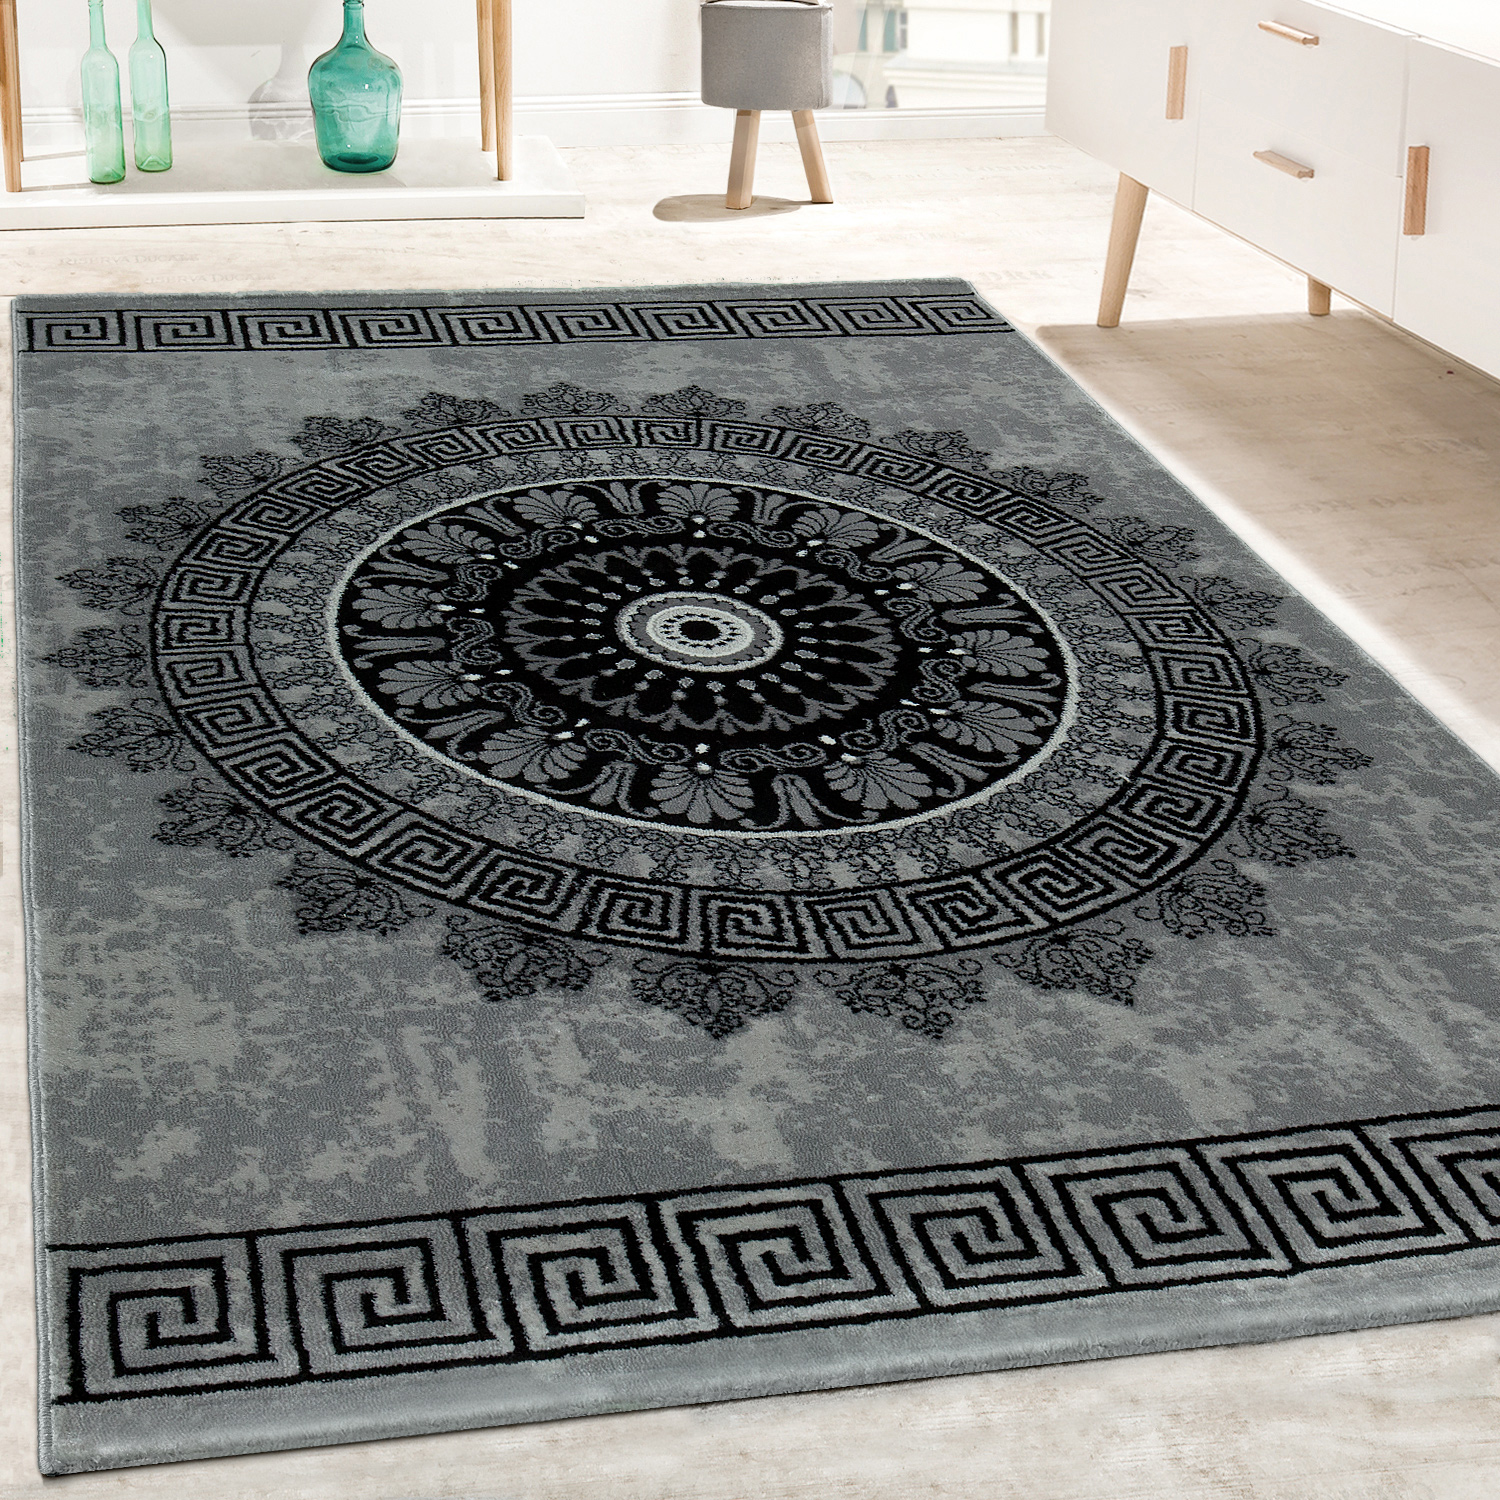 Designer Rug Living Room Mandala Pattern Short-Pile Baroque Style In Grey Black